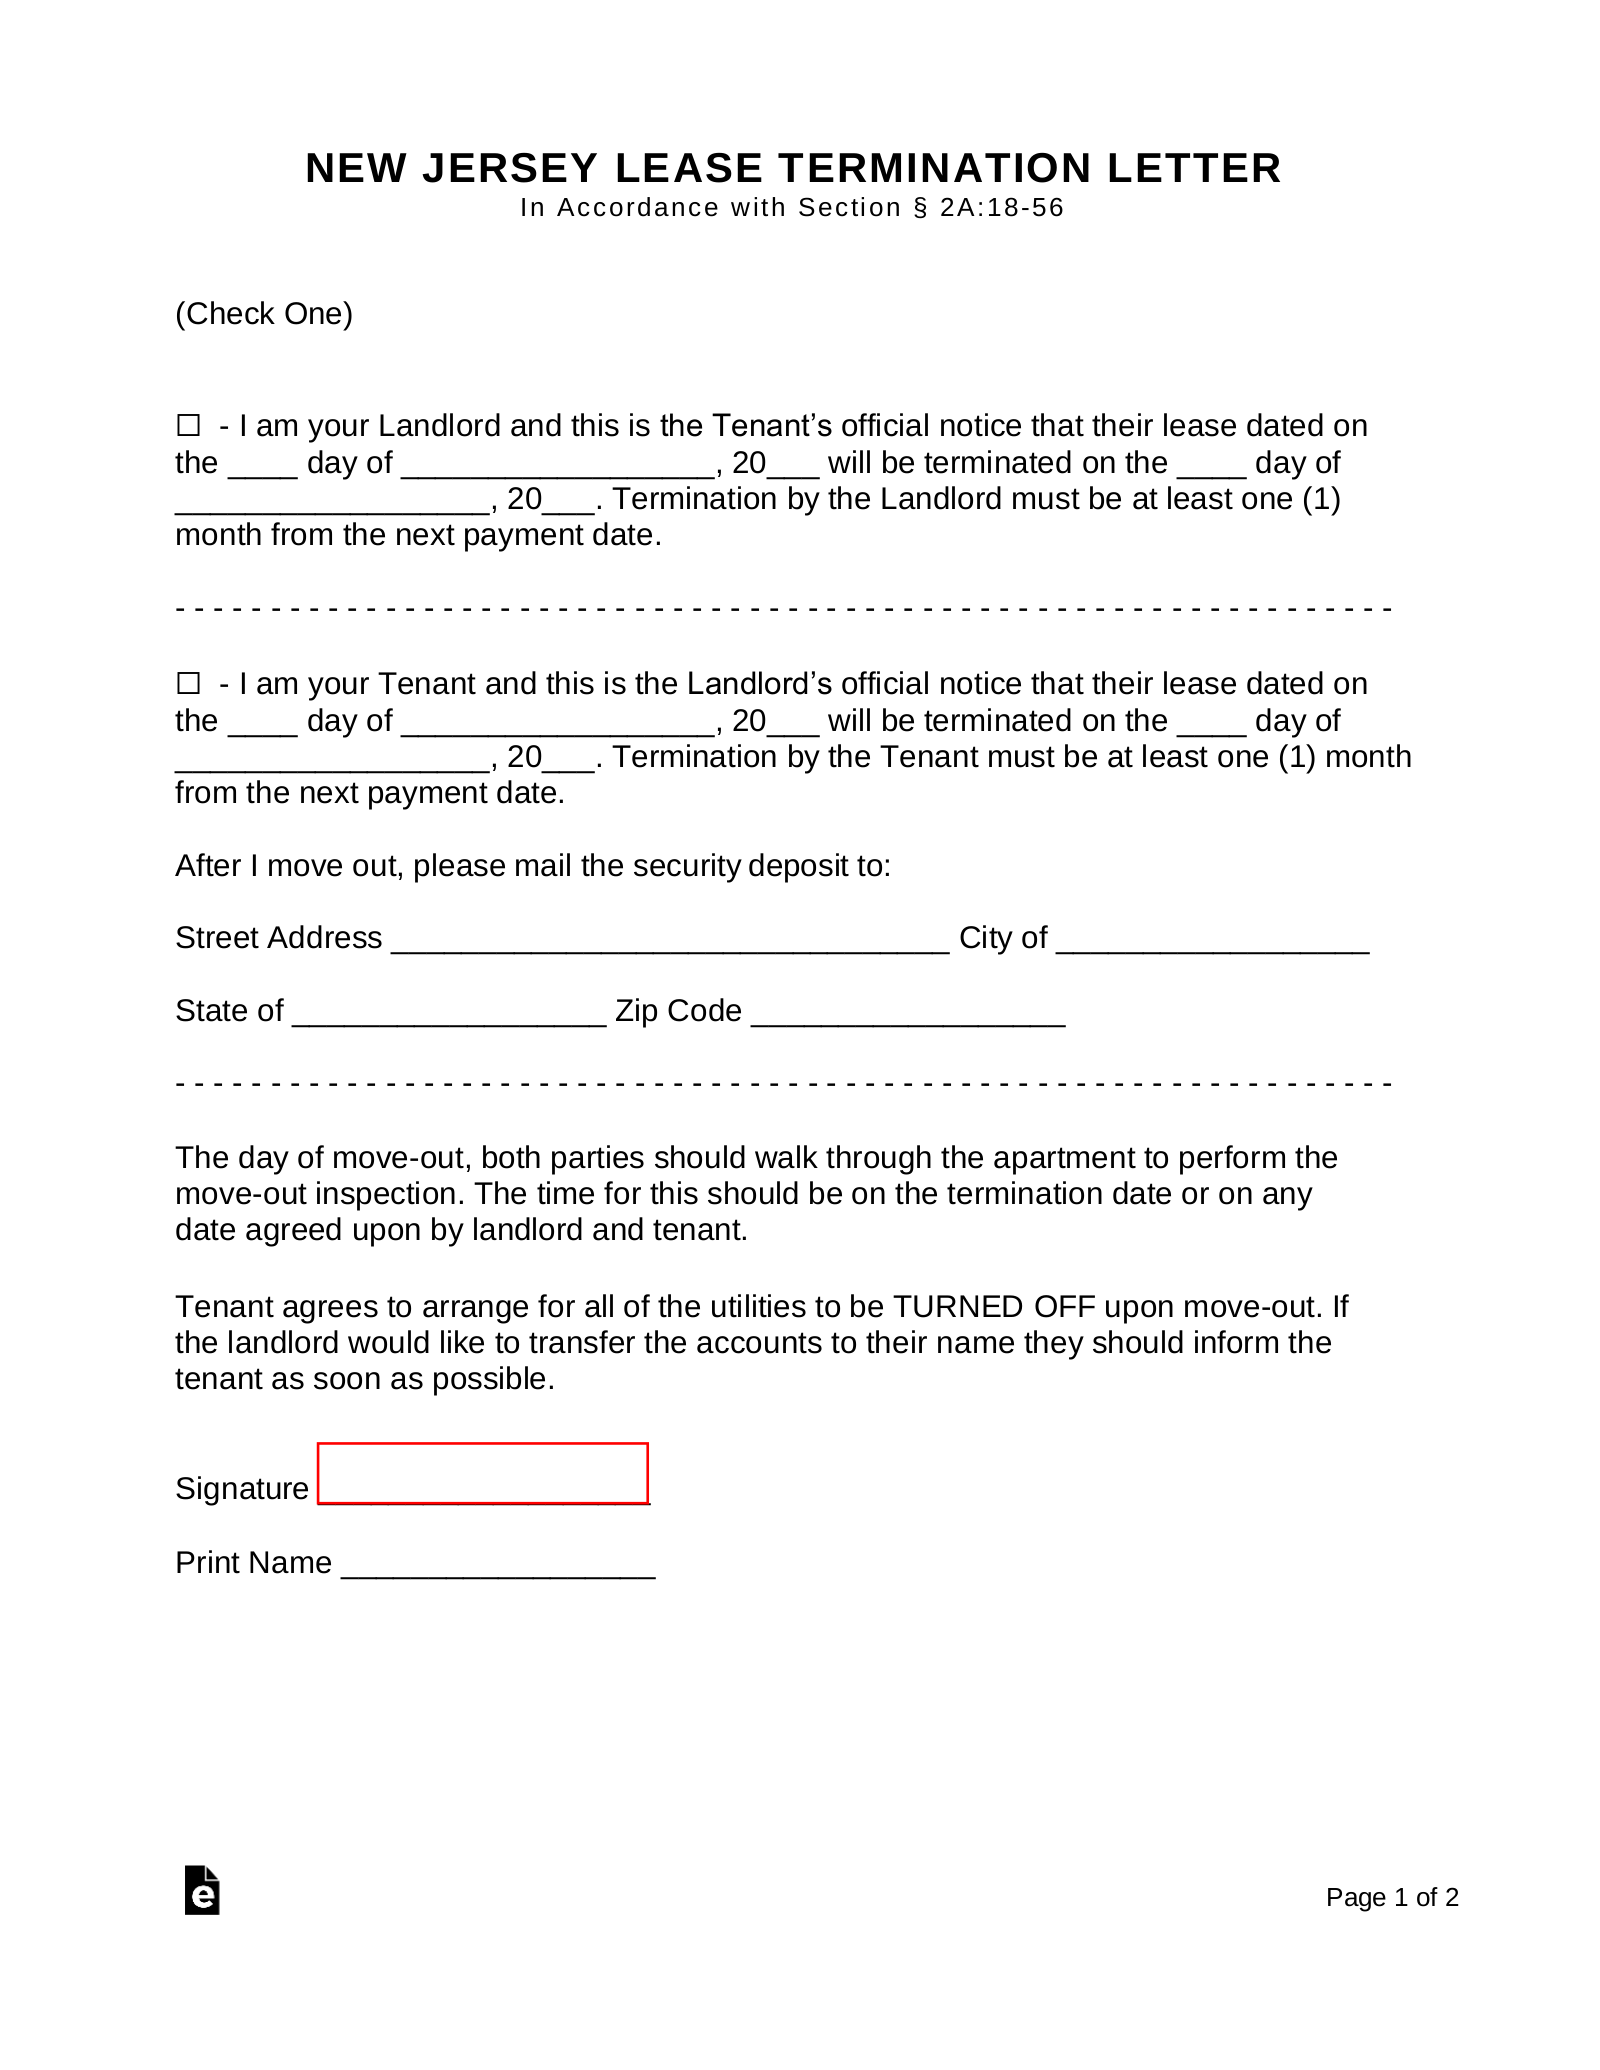 Moving Out Letter To Landlord Sample from eforms.com